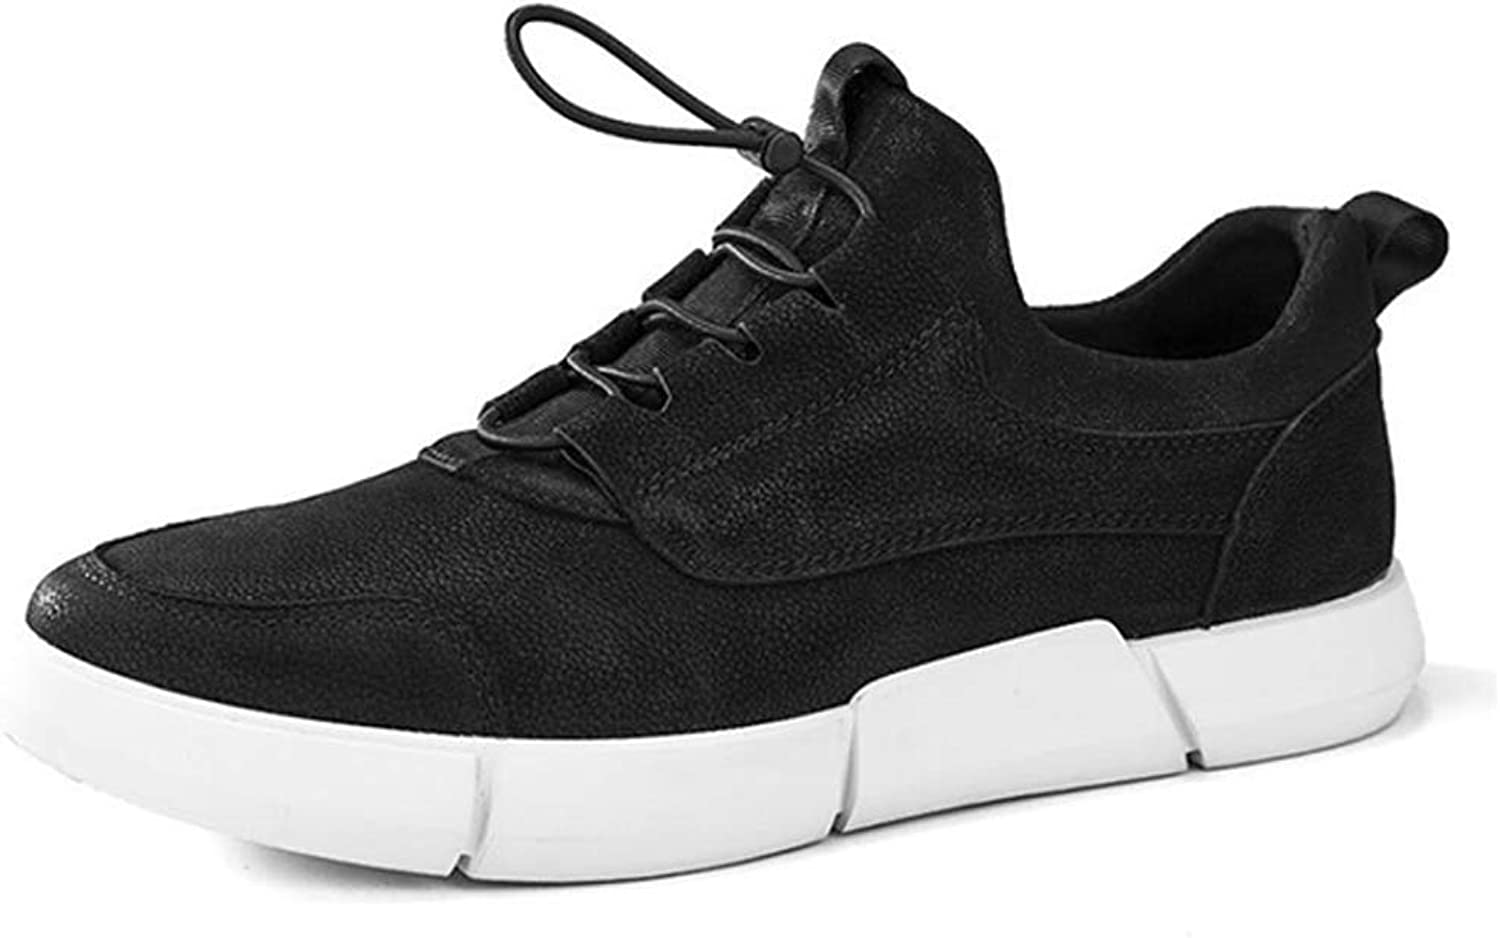 Fuxitoggo Leather Sneakers Outdoor Leisure Fashion Versatile Shock Absorption Breathable (color   Black, Size   44)